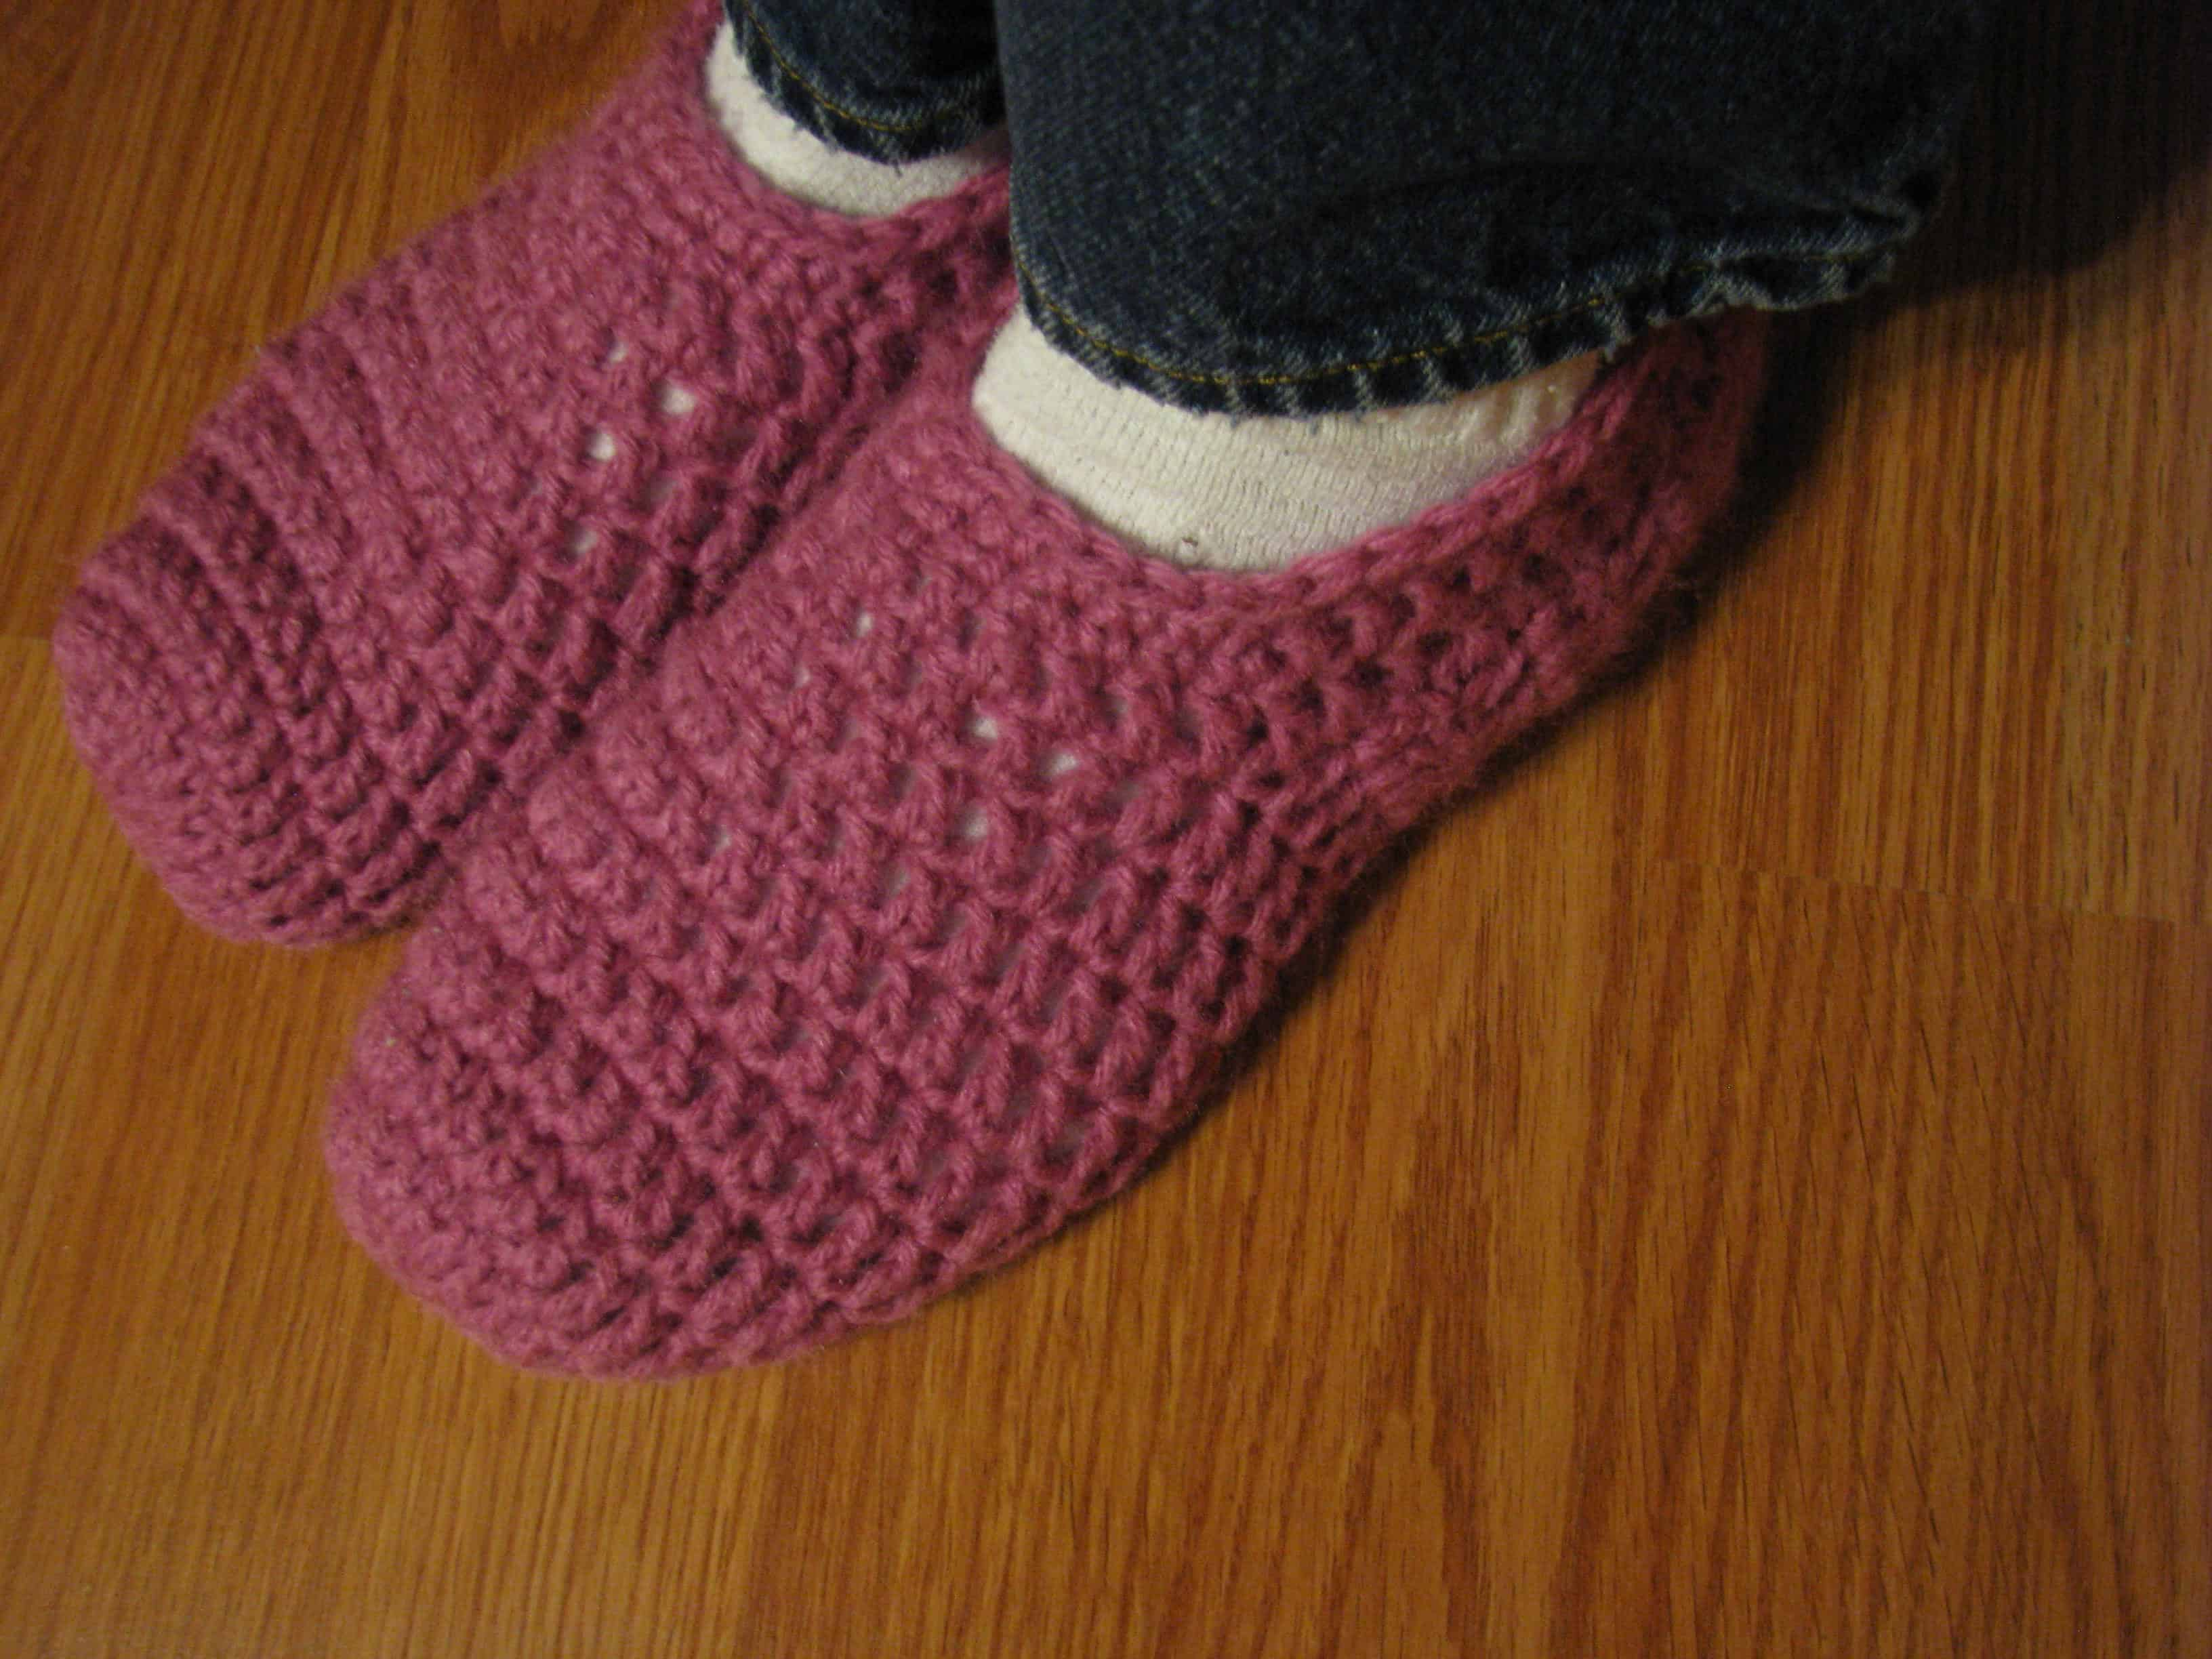 My Weekend Project: Crocheted Slippers!